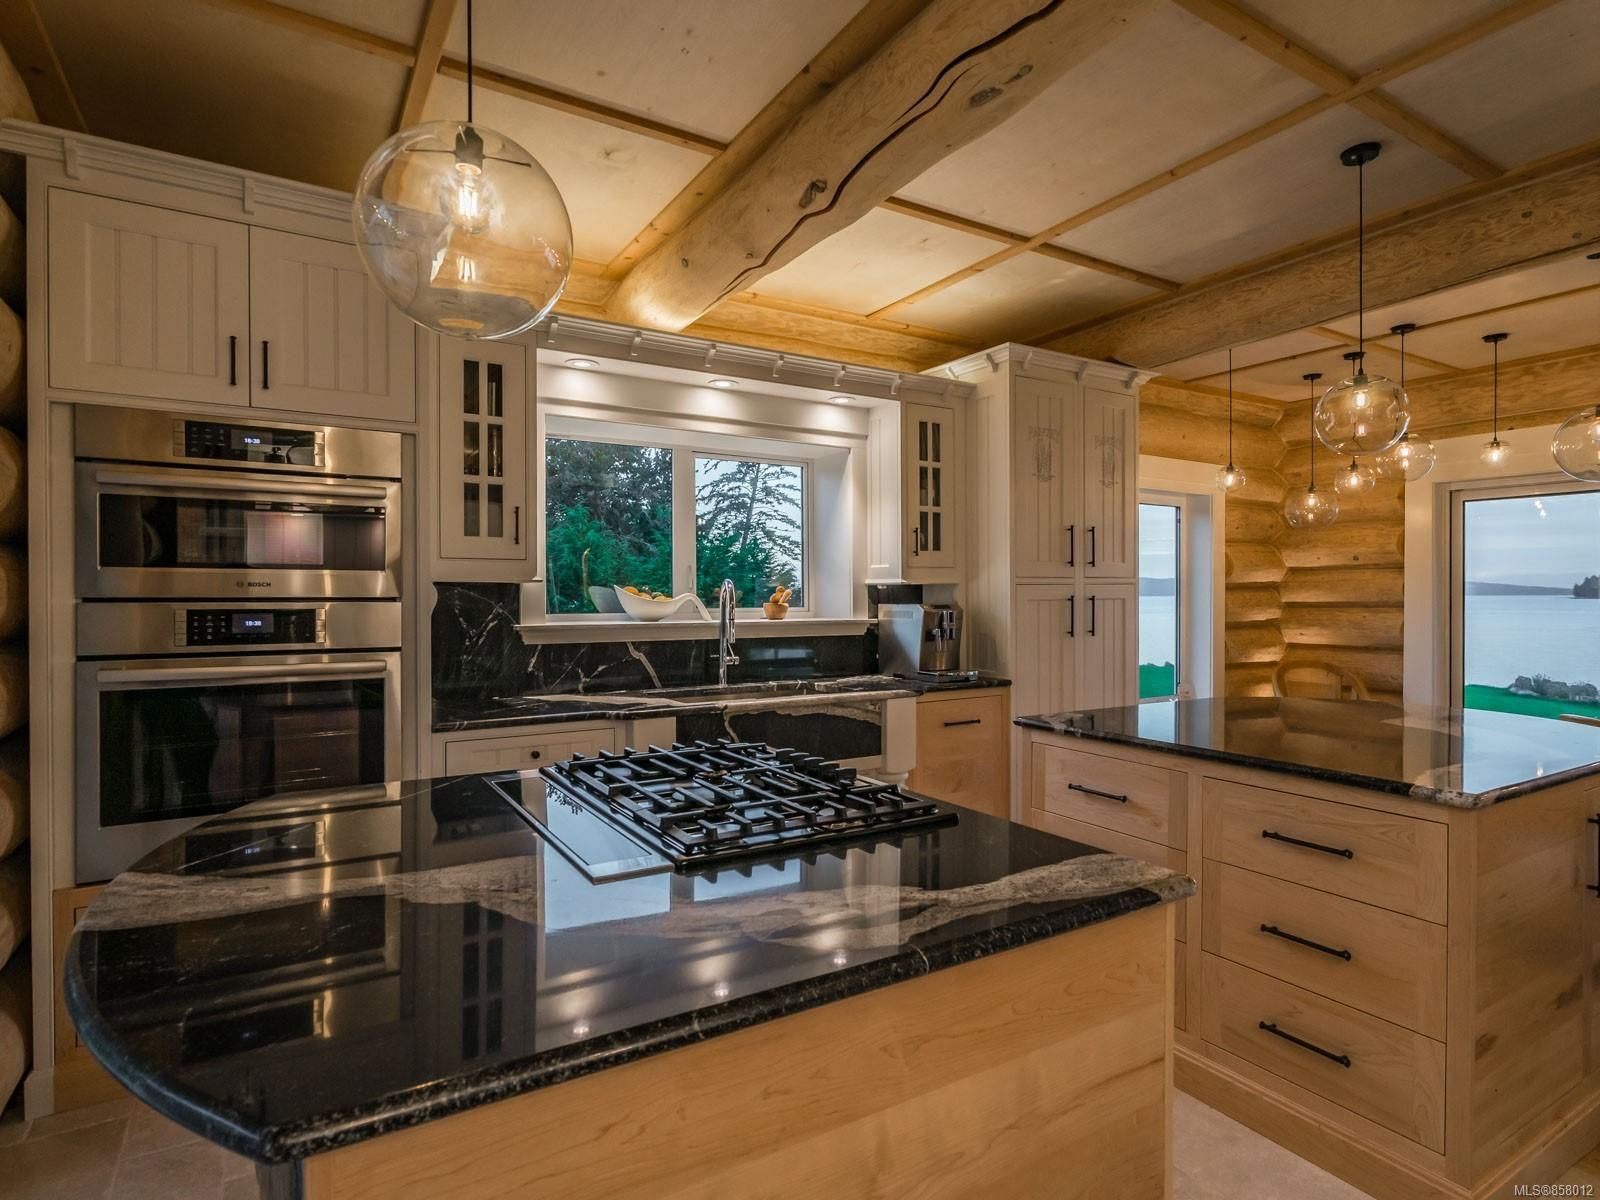 Photo 25: Photos: 6030 MINE Rd in : NI Port McNeill House for sale (North Island)  : MLS®# 858012